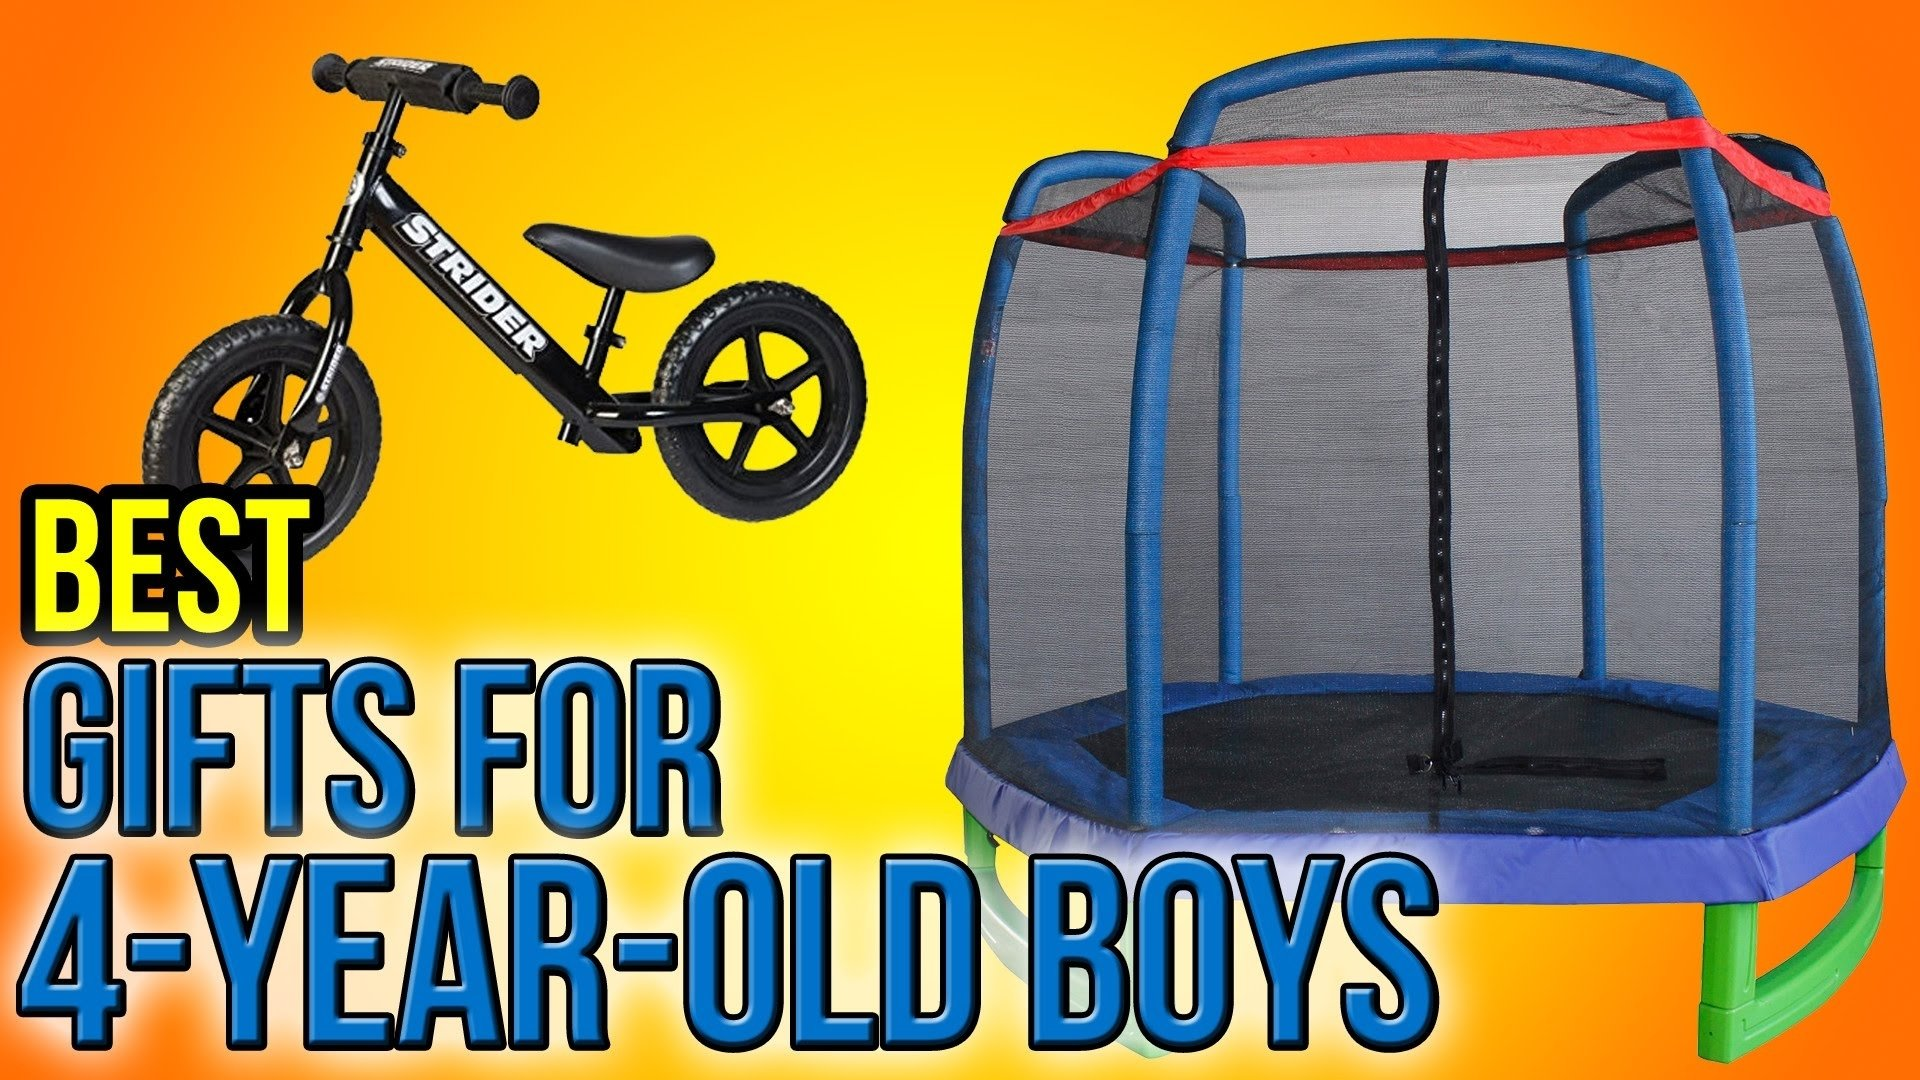 10 Amazing Gift Idea For 4 Year Old Boy 10 best gifts for 4 year old boys 2016 youtube 2